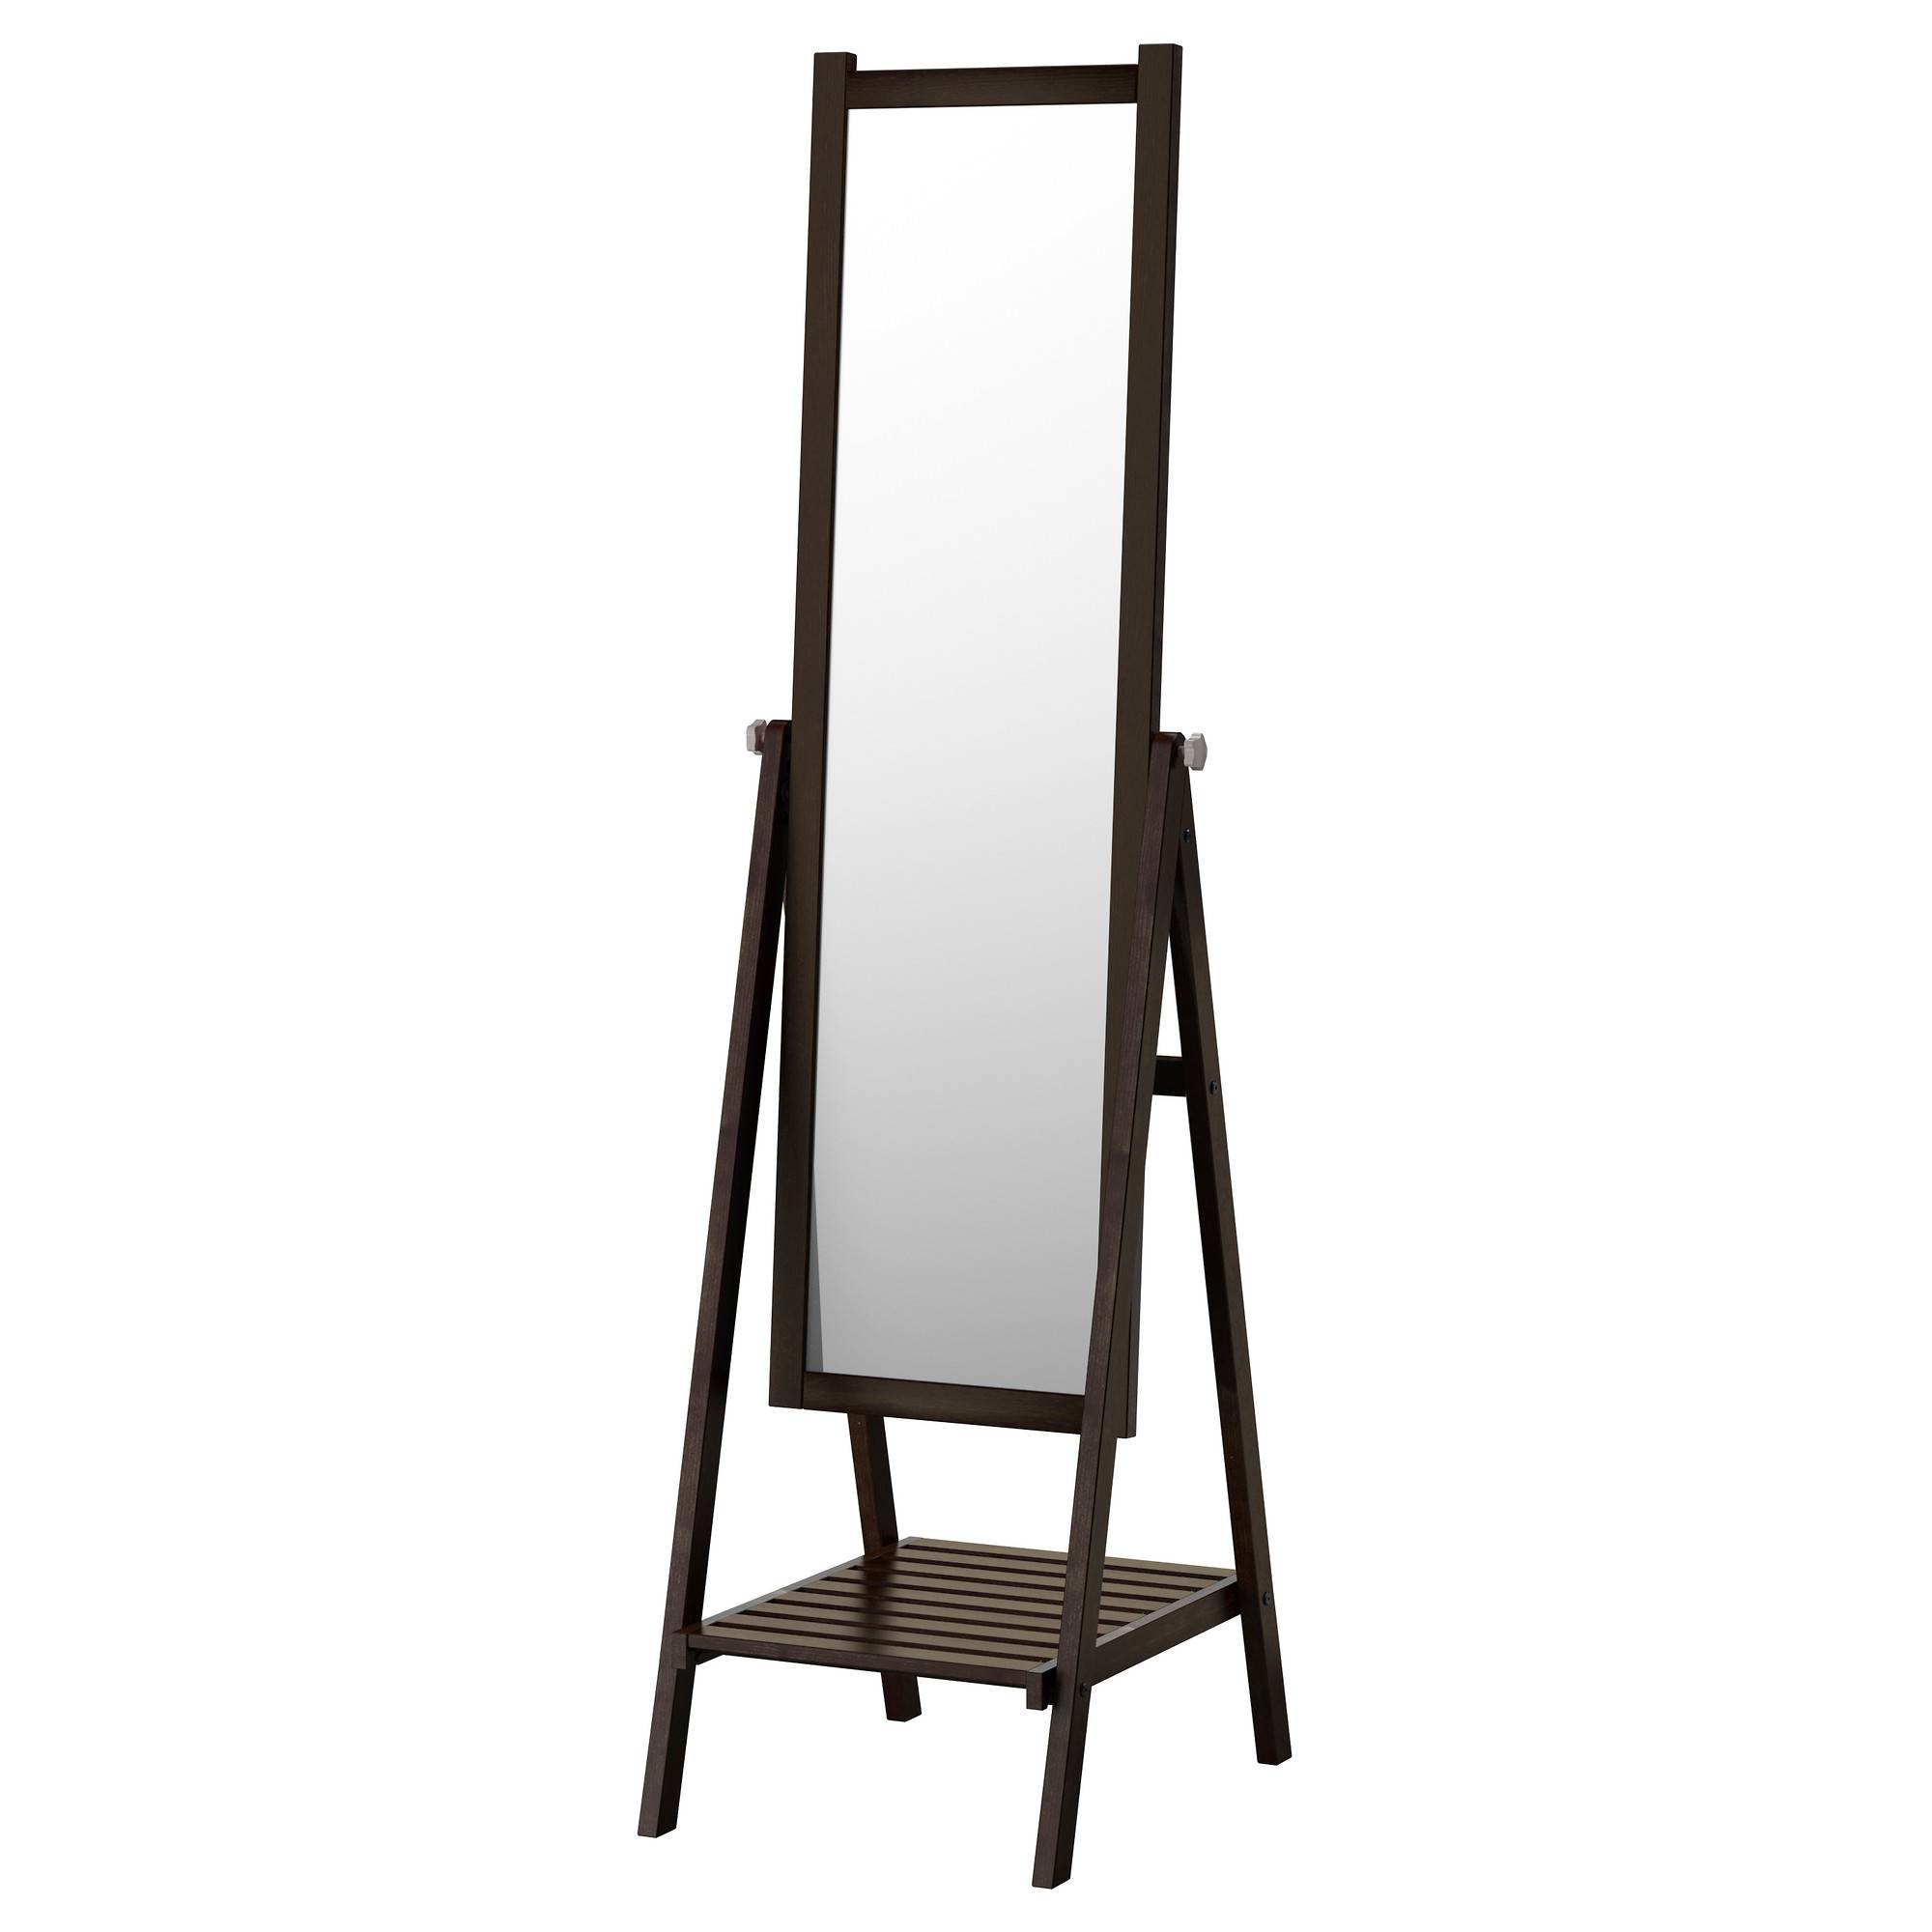 Isfjorden Standing Mirror Black-Brown Stain 47X182 Cm - Ikea with Free Standing Black Mirrors (Image 9 of 15)